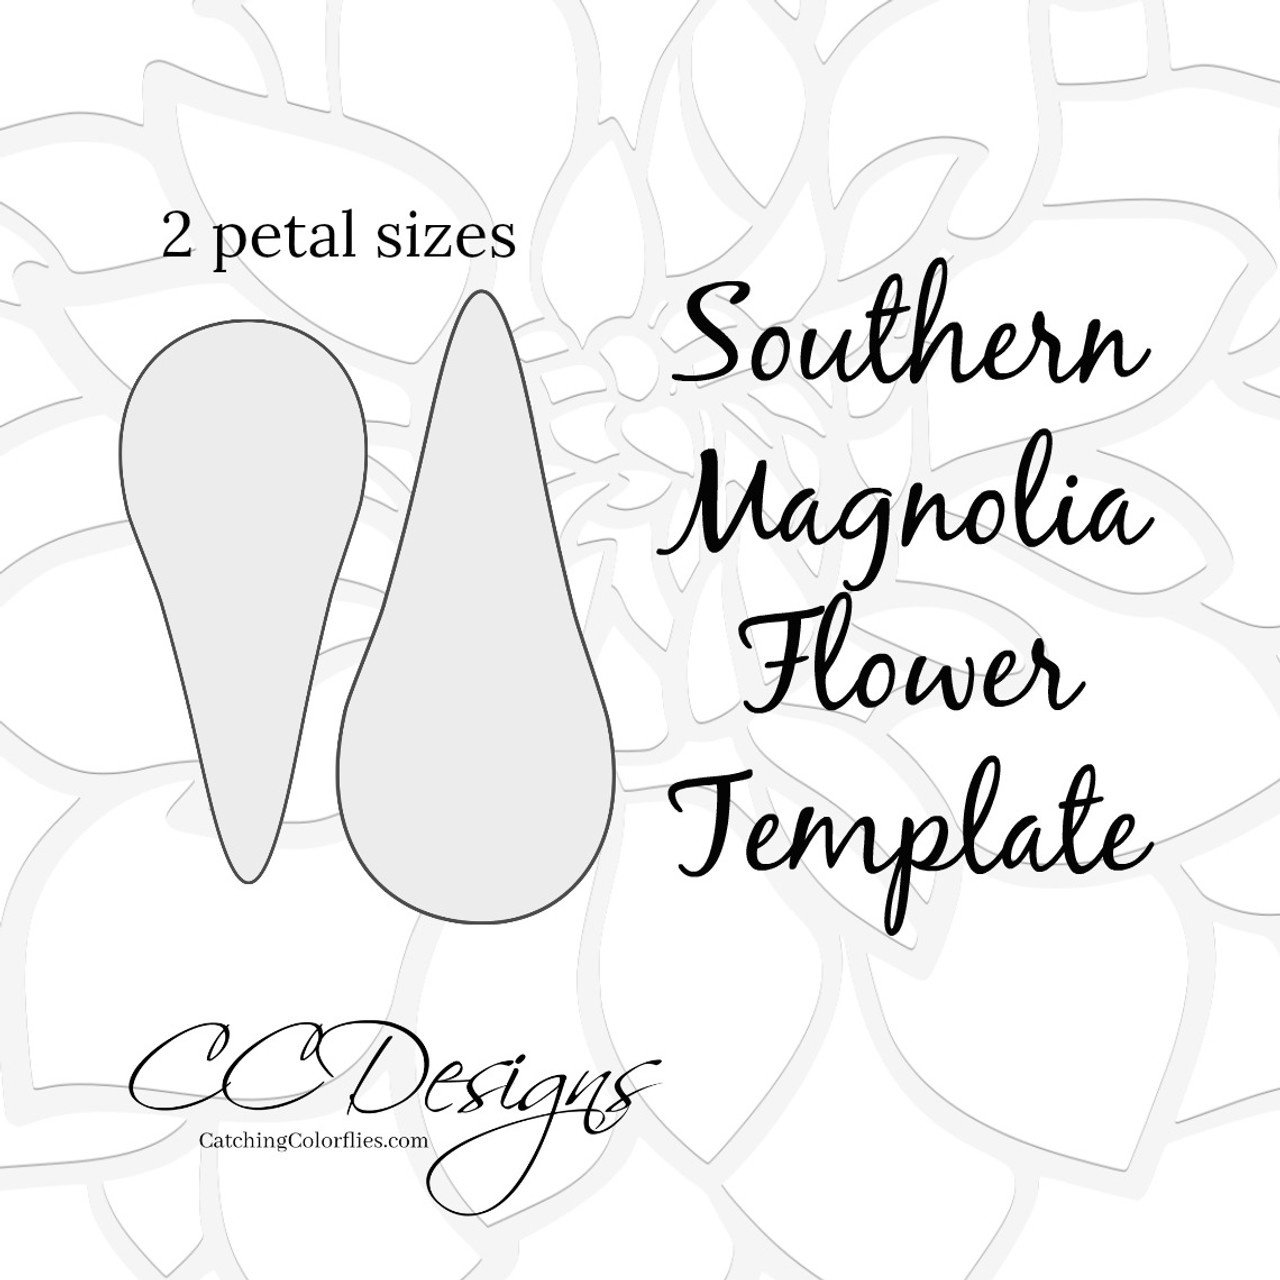 Southern magnolia paper flower template catching colorflies digital download southern magnolia paper flower template maxwellsz